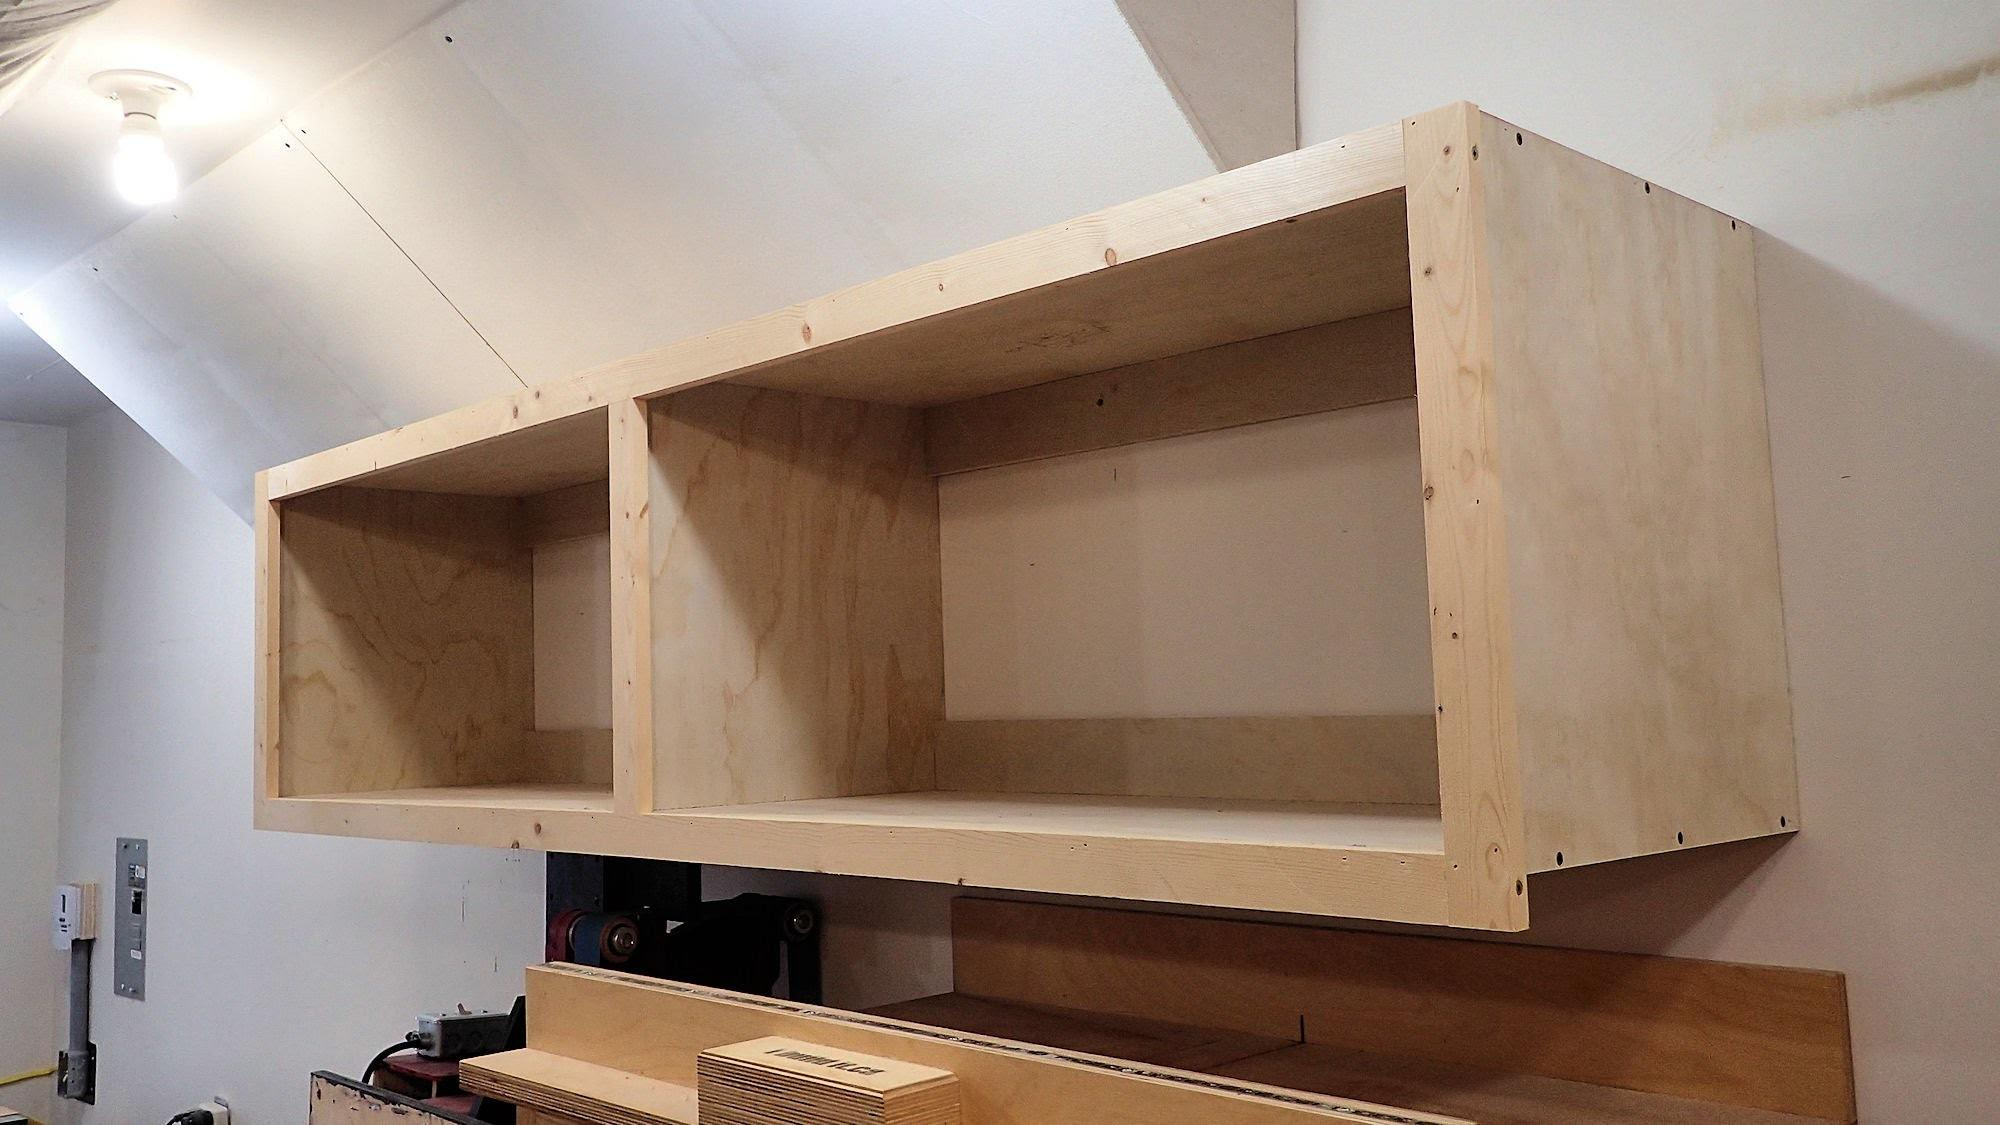 Wall Mounted Storage Cabinet One Day